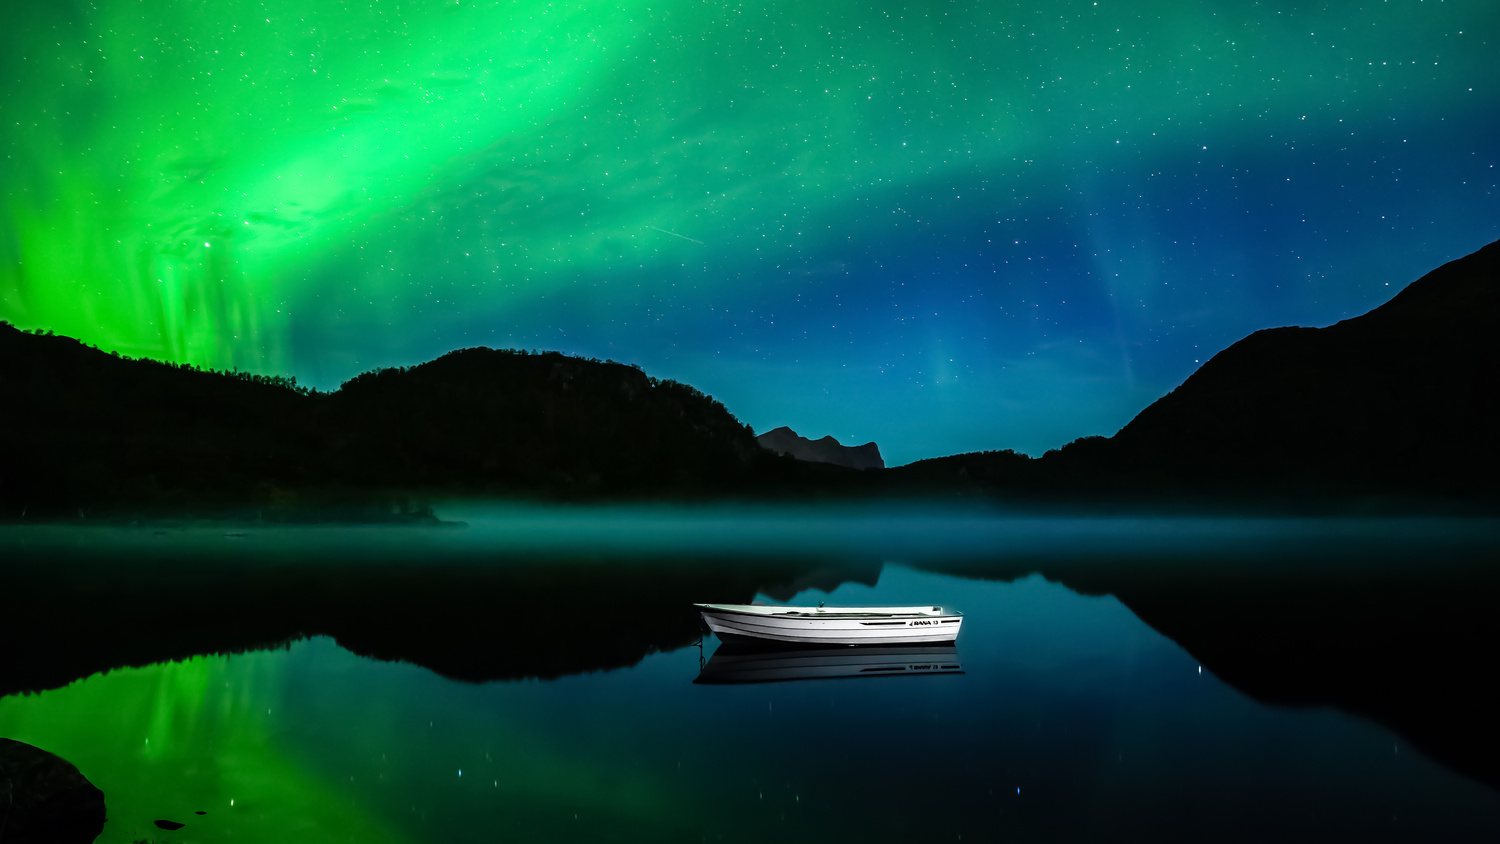 The Little Boat by Rickard Eriksson